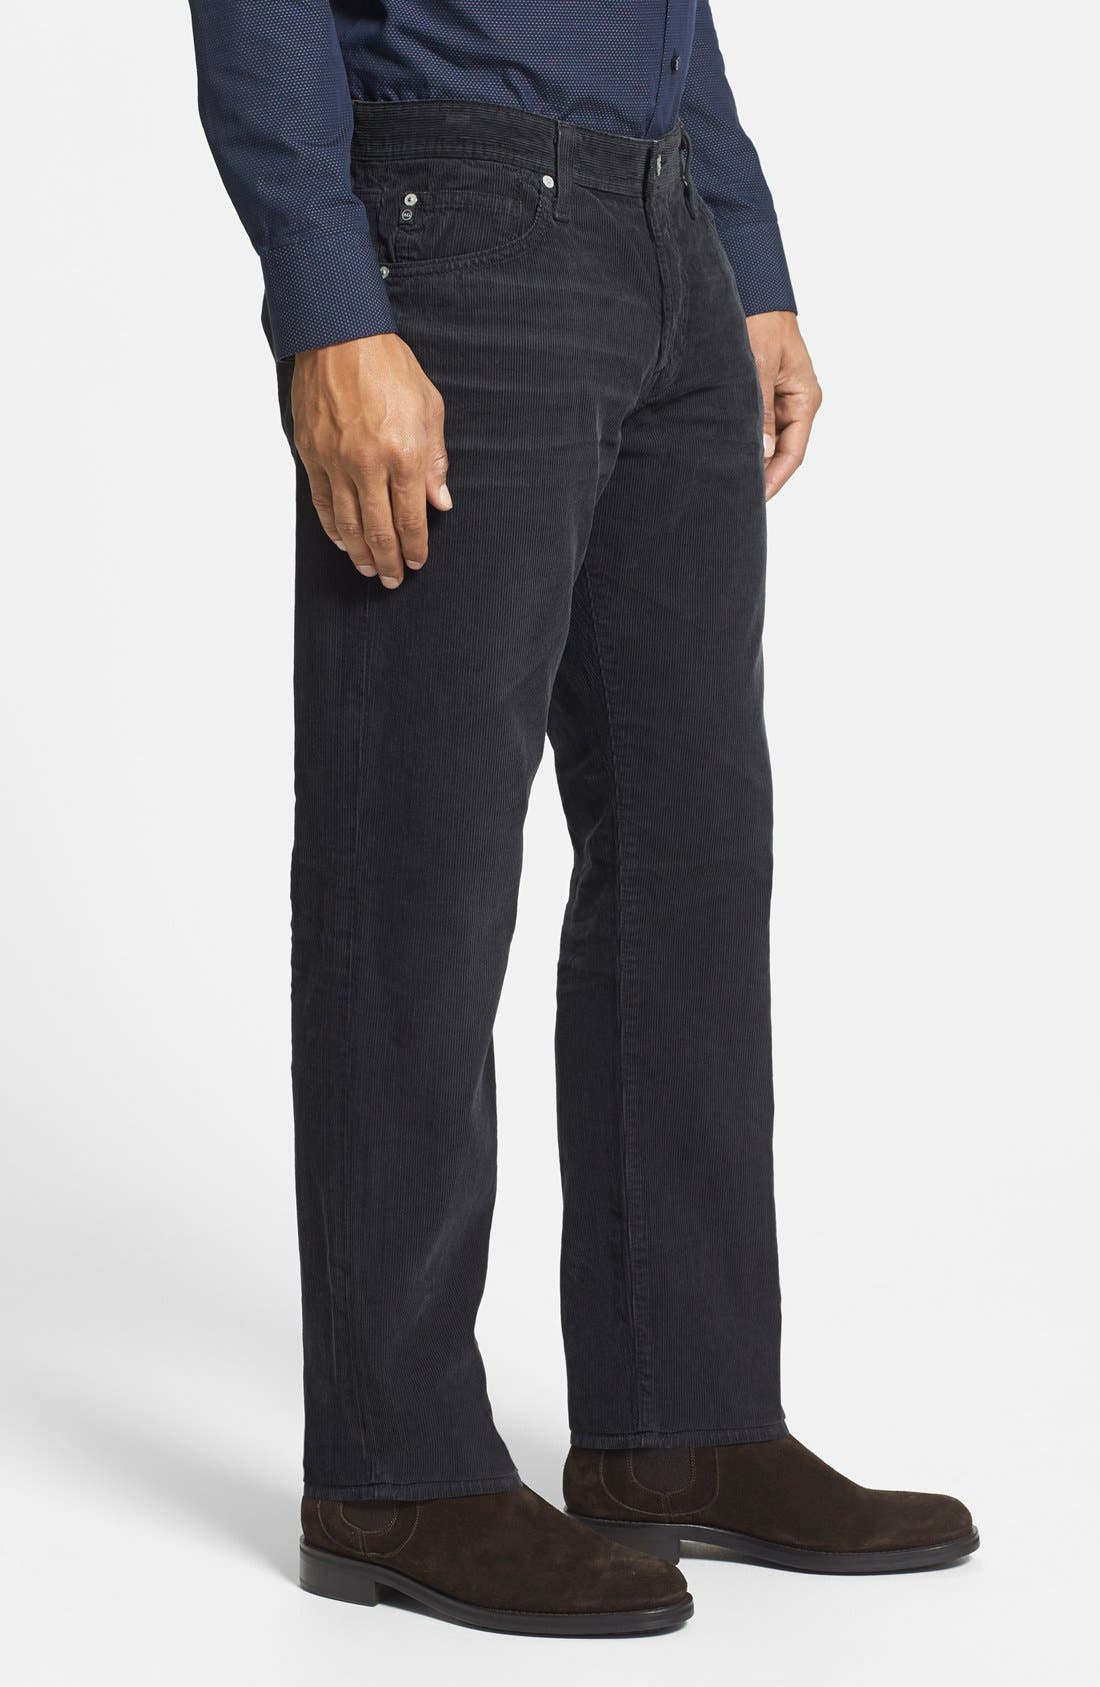 'Graduate' Tailored Straight Leg Corduroy Pants,                             Alternate thumbnail 63, color,